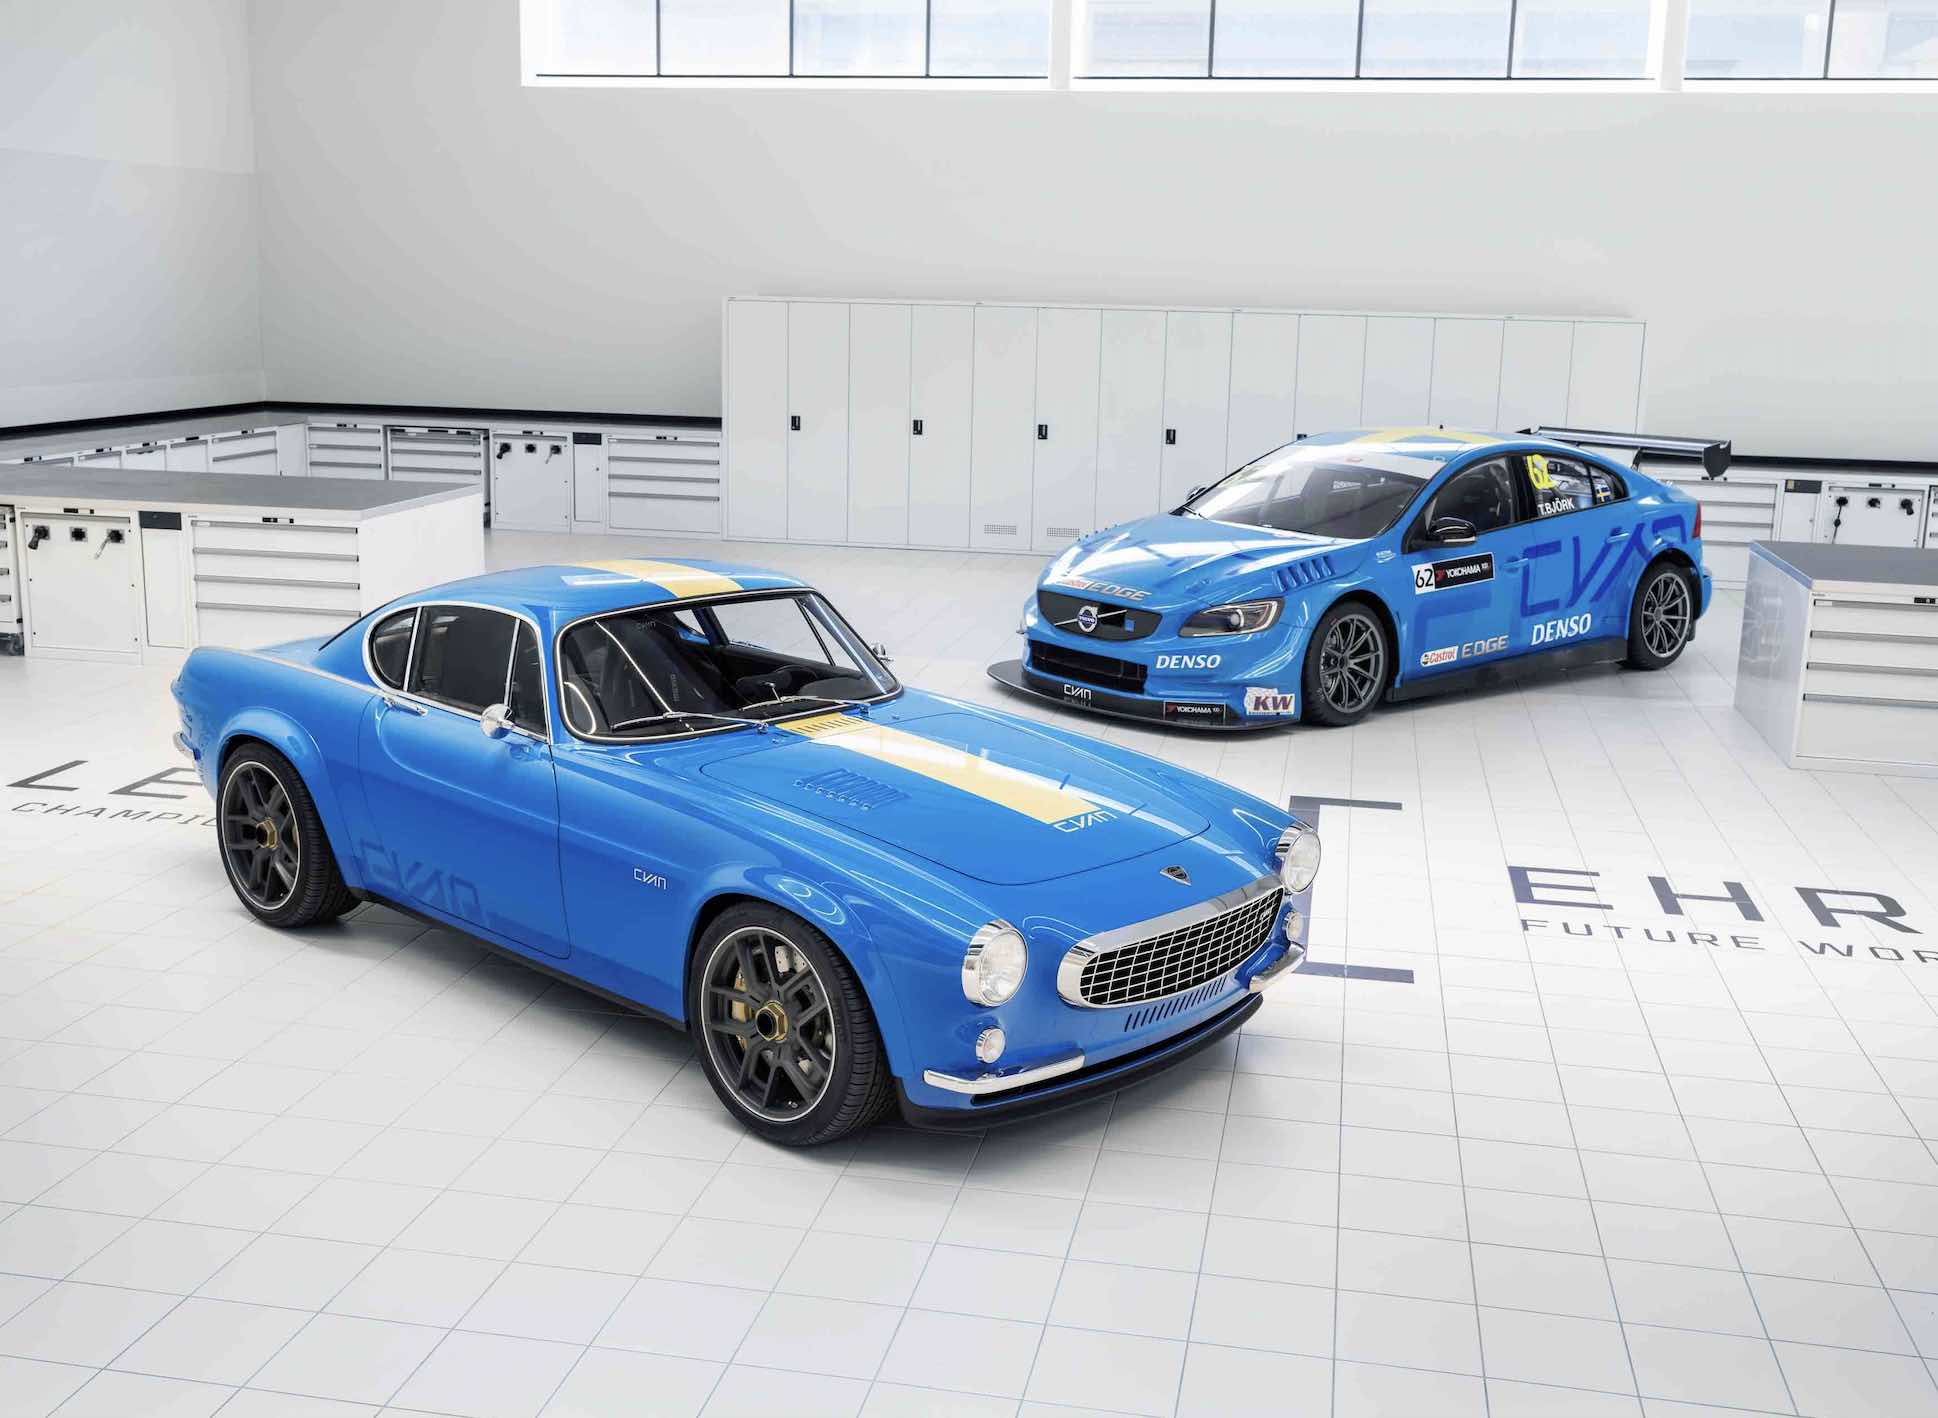 VolvoP1800 Cyan and other car in racing colours